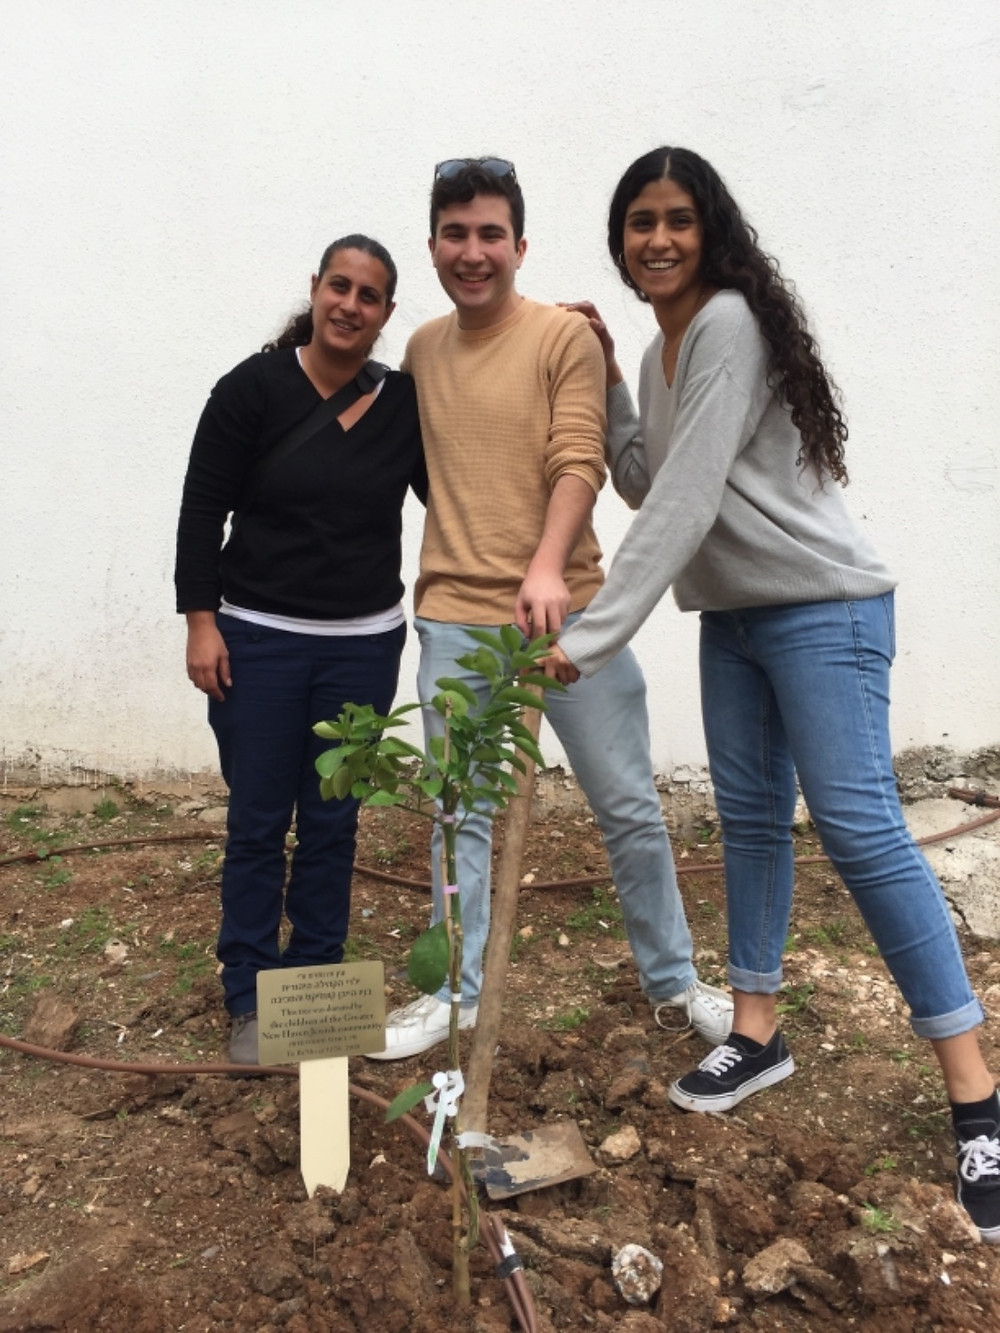 Shani, our first emissary, plants a tree with current emissaries Rotem and Talya, continuing the cycle of giving back to the Afula community